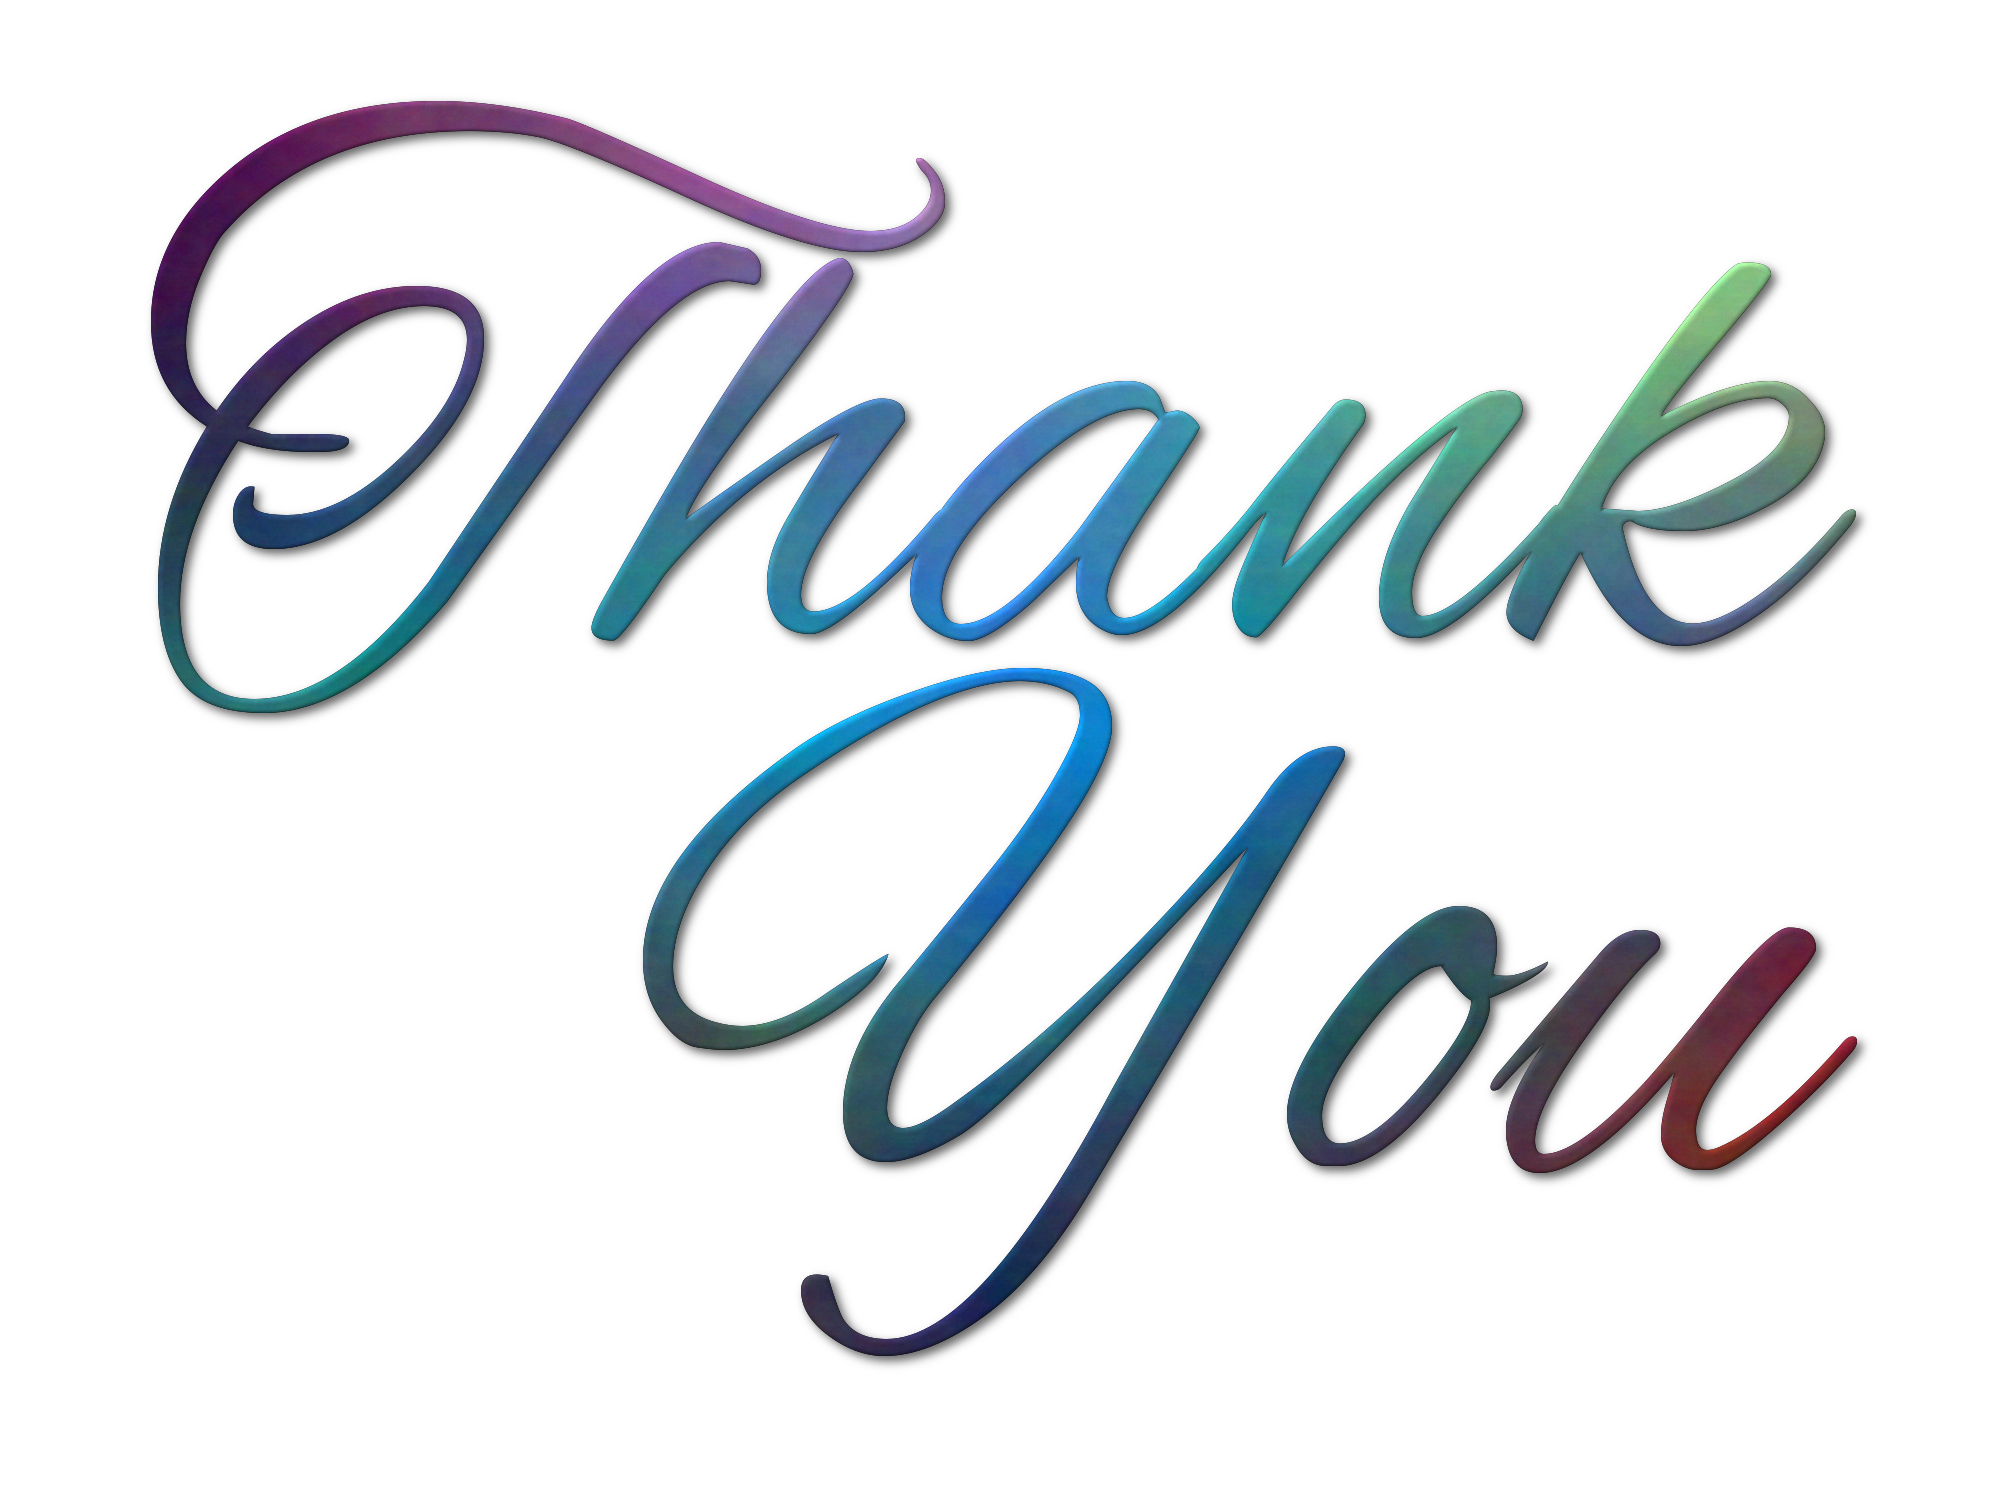 thank-you-394180.png